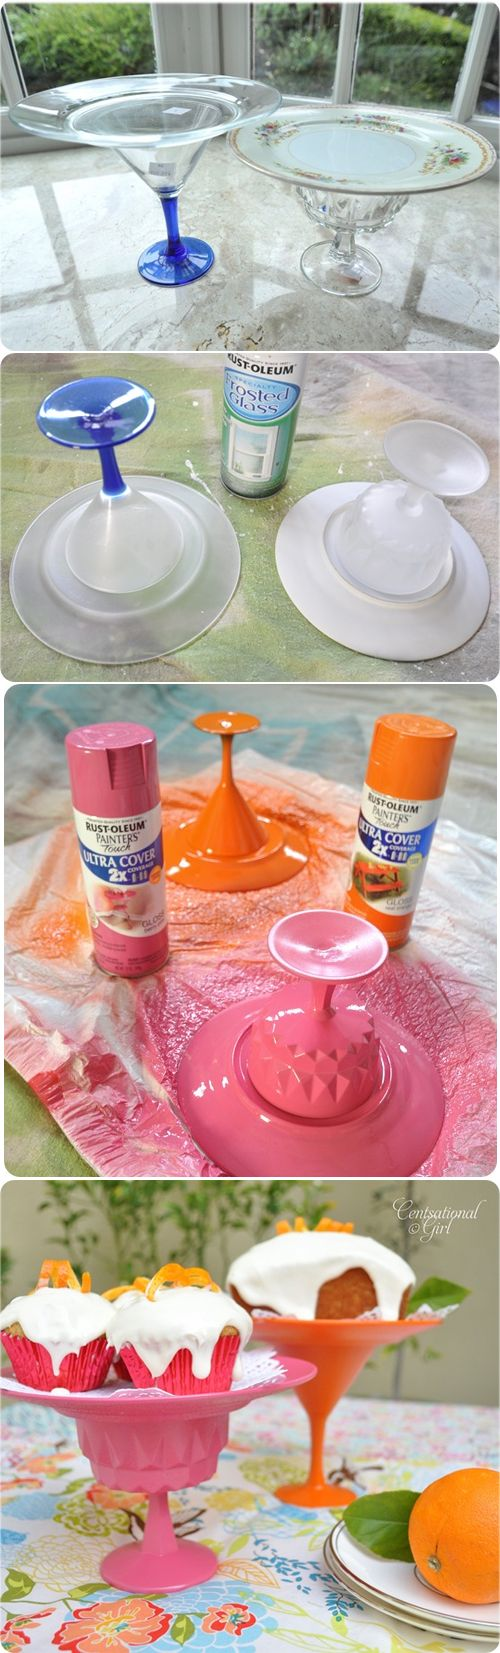 Re-use of mismatched dishes